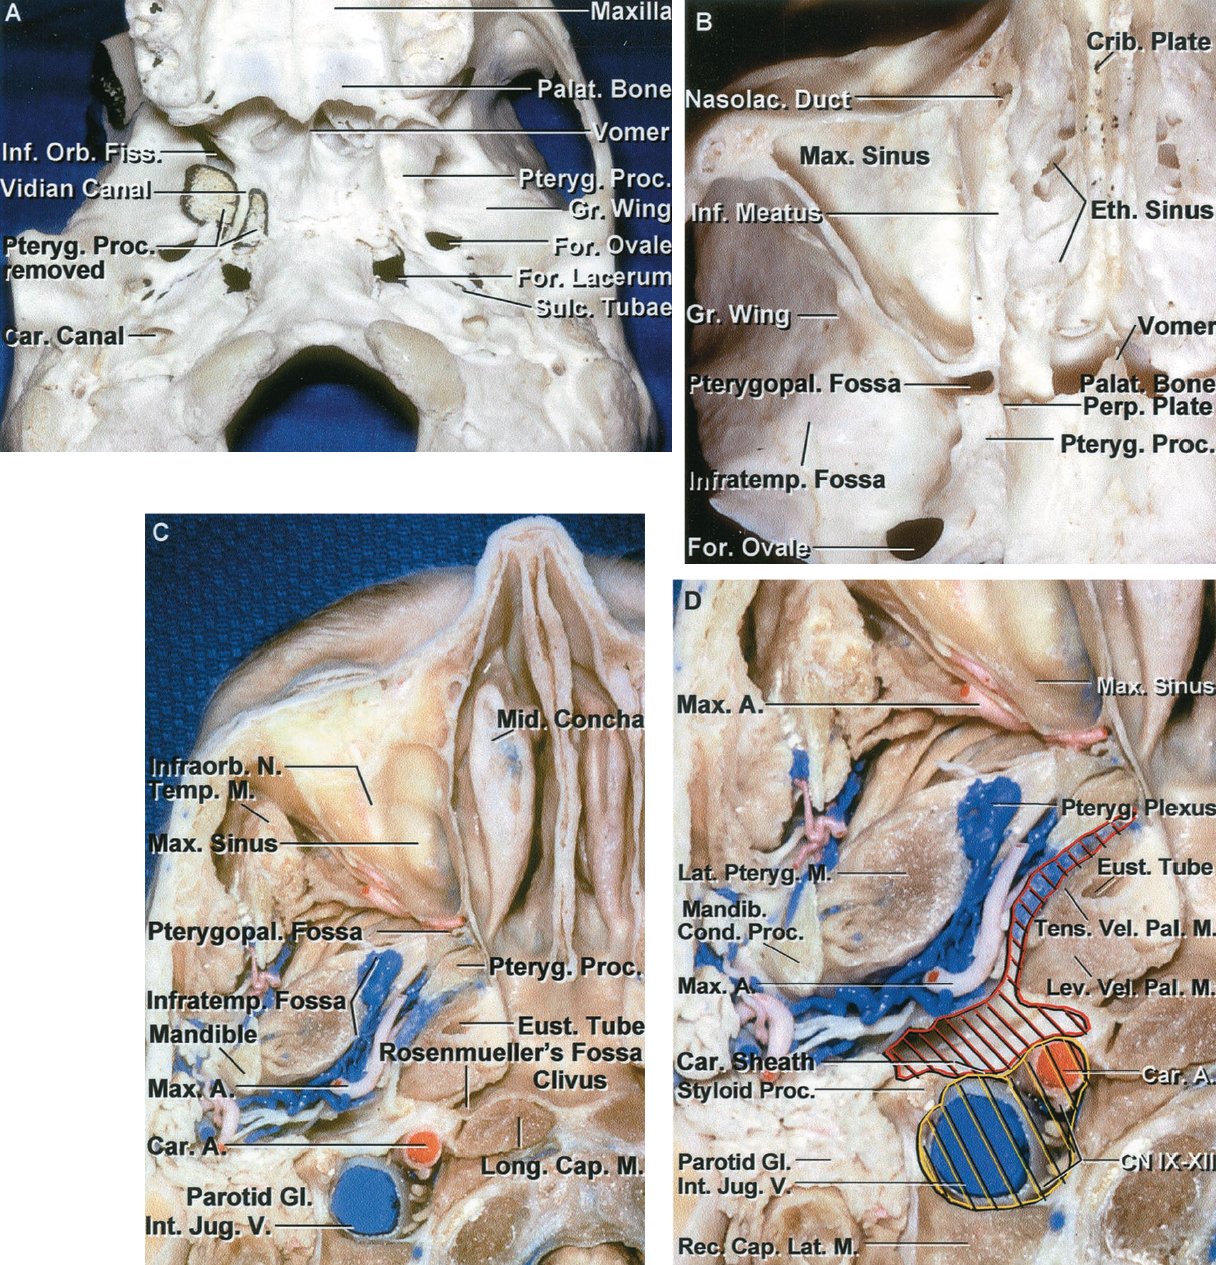 FIGURE 6.6. A-D. A, inferior view of cranial base. The right pterygoid process has been sectioned and removed at its junction with the greater wing and body of the sphenoid bone to expose the pterygopalatine fossa and the vidian canal. The vidian nerve, formed by the union of the superficial and deep petrosal nerves, courses in the vidian canal, which passes through the root of the pterygoid process. It opens posteriorly at the anterolateral margin of the foramen lacerum and anteriorly into the medial portion of the pterygopalatine fossa. The sulcus tubae, which is the attachment site of the cartilaginous part of the eustachian tube to the cranial base, is located on the extracranial surface of the sphenopetrosal fissure, anterolateral to the foramen lacerum and the carotid canal, and posteromedial to the foramina ovale and spinosum. The lateral part of the inferior orbital fissure opens into the infratemporal fossa located below the greater sphenoid wing, and the medial part opens into the pterygopalatine fossa located below the orbital apex between the maxilla and pterygoid process. The right zygomatic arch has been removed. B, inferior view of an axial section of a cranium at the level of the maxillary sinus. The pterygopalatine fossa is located between the posterior wall of the maxillary sinus and the pterygoid process. The roof of the maxillary sinus forms the floor of the orbit. The infratemporal fossa is located below the greater wing of the sphenoid and opens medially into the pterygopalatine fossa. The medial wall of the pterygopalatine fossa is formed by the perpendicular plate of the palatine bone, which has an opening, the sphenopalatine foramen, through which branches of the maxillary artery and nerve reach the nasal cavity. The ethmoid air cells are located medial to the orbit. C, inferior views of an axial section of the cranial base. The infratemporal fossa is surrounded by the maxillary sinus anteriorly, the mandible laterally, the pterygoid process anteromedially, and the parapharyngeal space posteromedially. It contains the mandibular nerve and maxillary artery and their branches, the medial and lateral pterygoid muscles, and the pterygoid venous plexus. The posterior nasopharyngeal wall is separated from the lower clivus by the longus capitis, and the nasopharyngeal roof rests against the upper clivus and floor of the sphenoid sinus. D, enlarged view with highlighting of the pre- (red) and poststyloid (yellow) compartments of the parapharyngeal space. The styloid diaphragm, formed by the anterior part of the carotid sheath, separates the parapharyngeal space into pre- and poststyloid parts. The prestyloid compartment, a narrow fat-containing space between the medial pterygoid and tensor veli palatini muscle, separates the infratemporal fossa from the medially located lateral nasopharyngeal region containing the tensor and levator veli palatini and the eustachian tube. The poststyloid compartment, located behind the prestyloid part, contains the internal carotid artery, internal jugular vein, and the Cranial Nerves IX through XII.